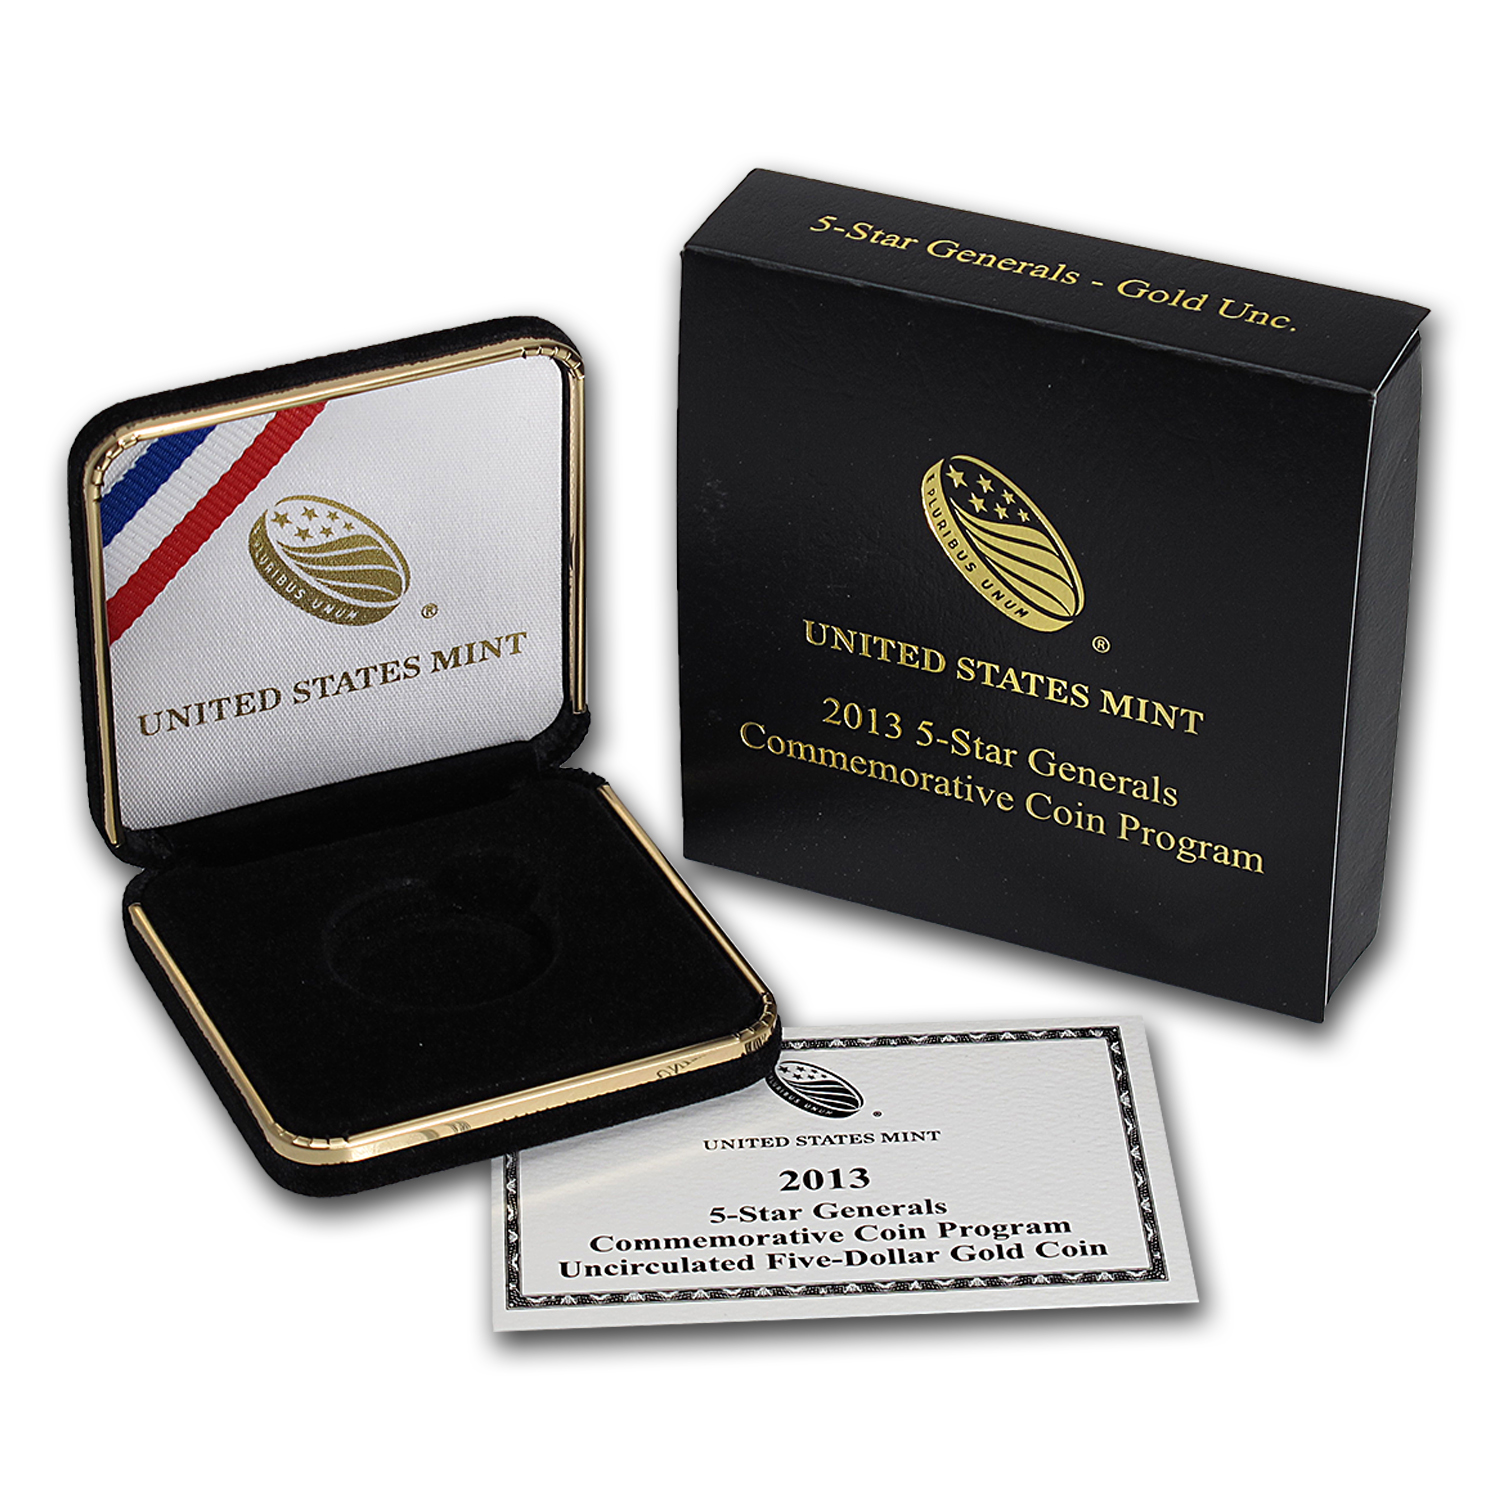 OGP Box & COA - 2013 U.S. Mint 5 Star General $5 Gold Unc. Coin